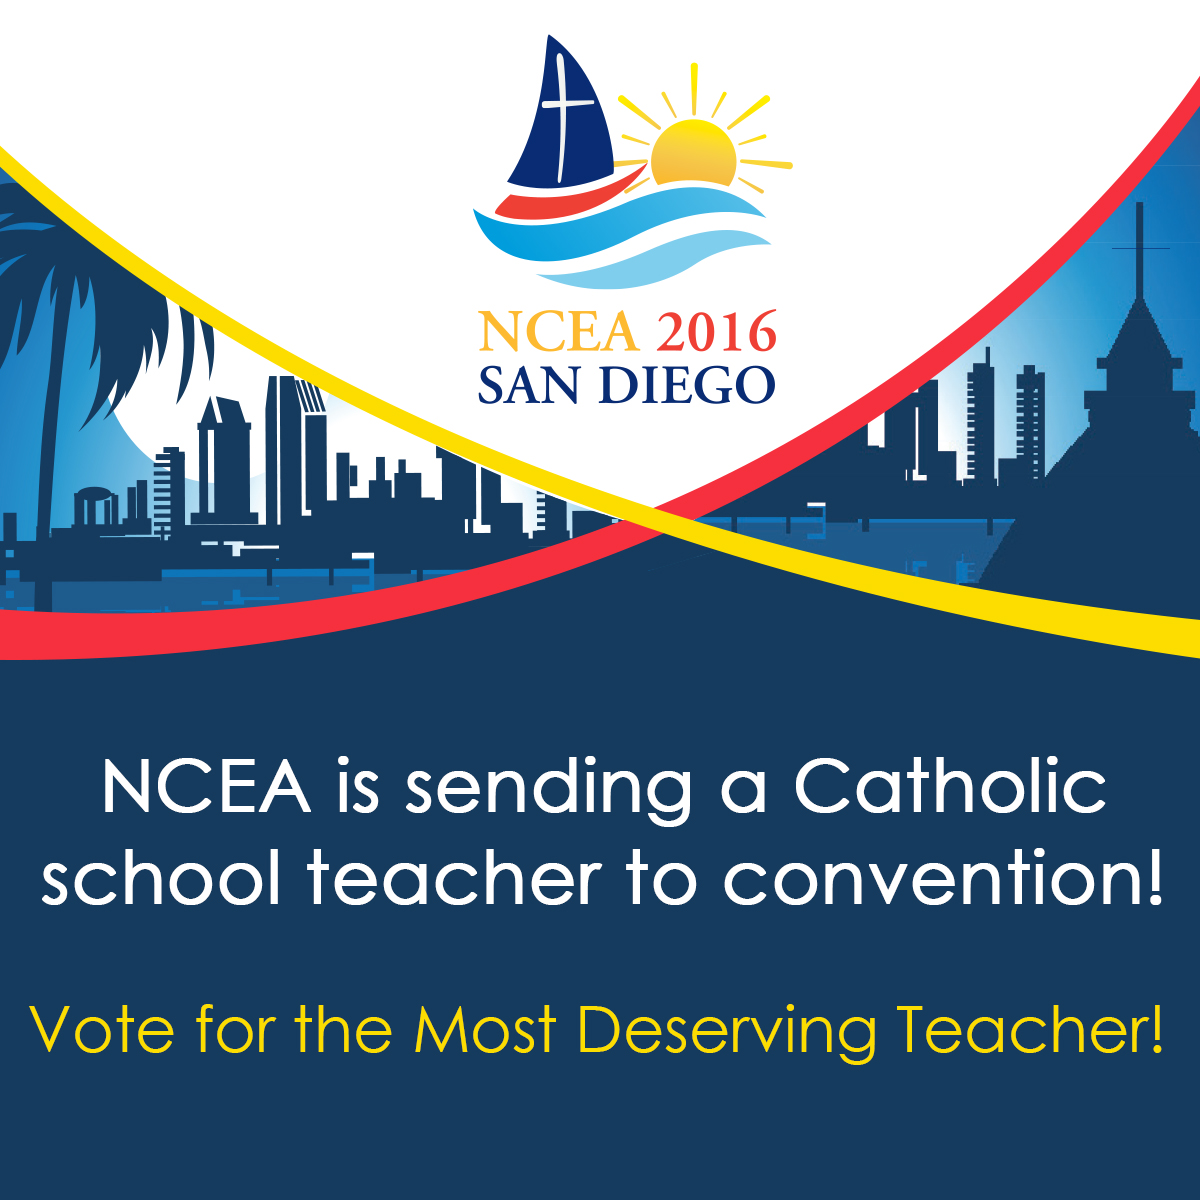 What Deserving Teacher Do You Think Should Be Sent to NCEA 2016?